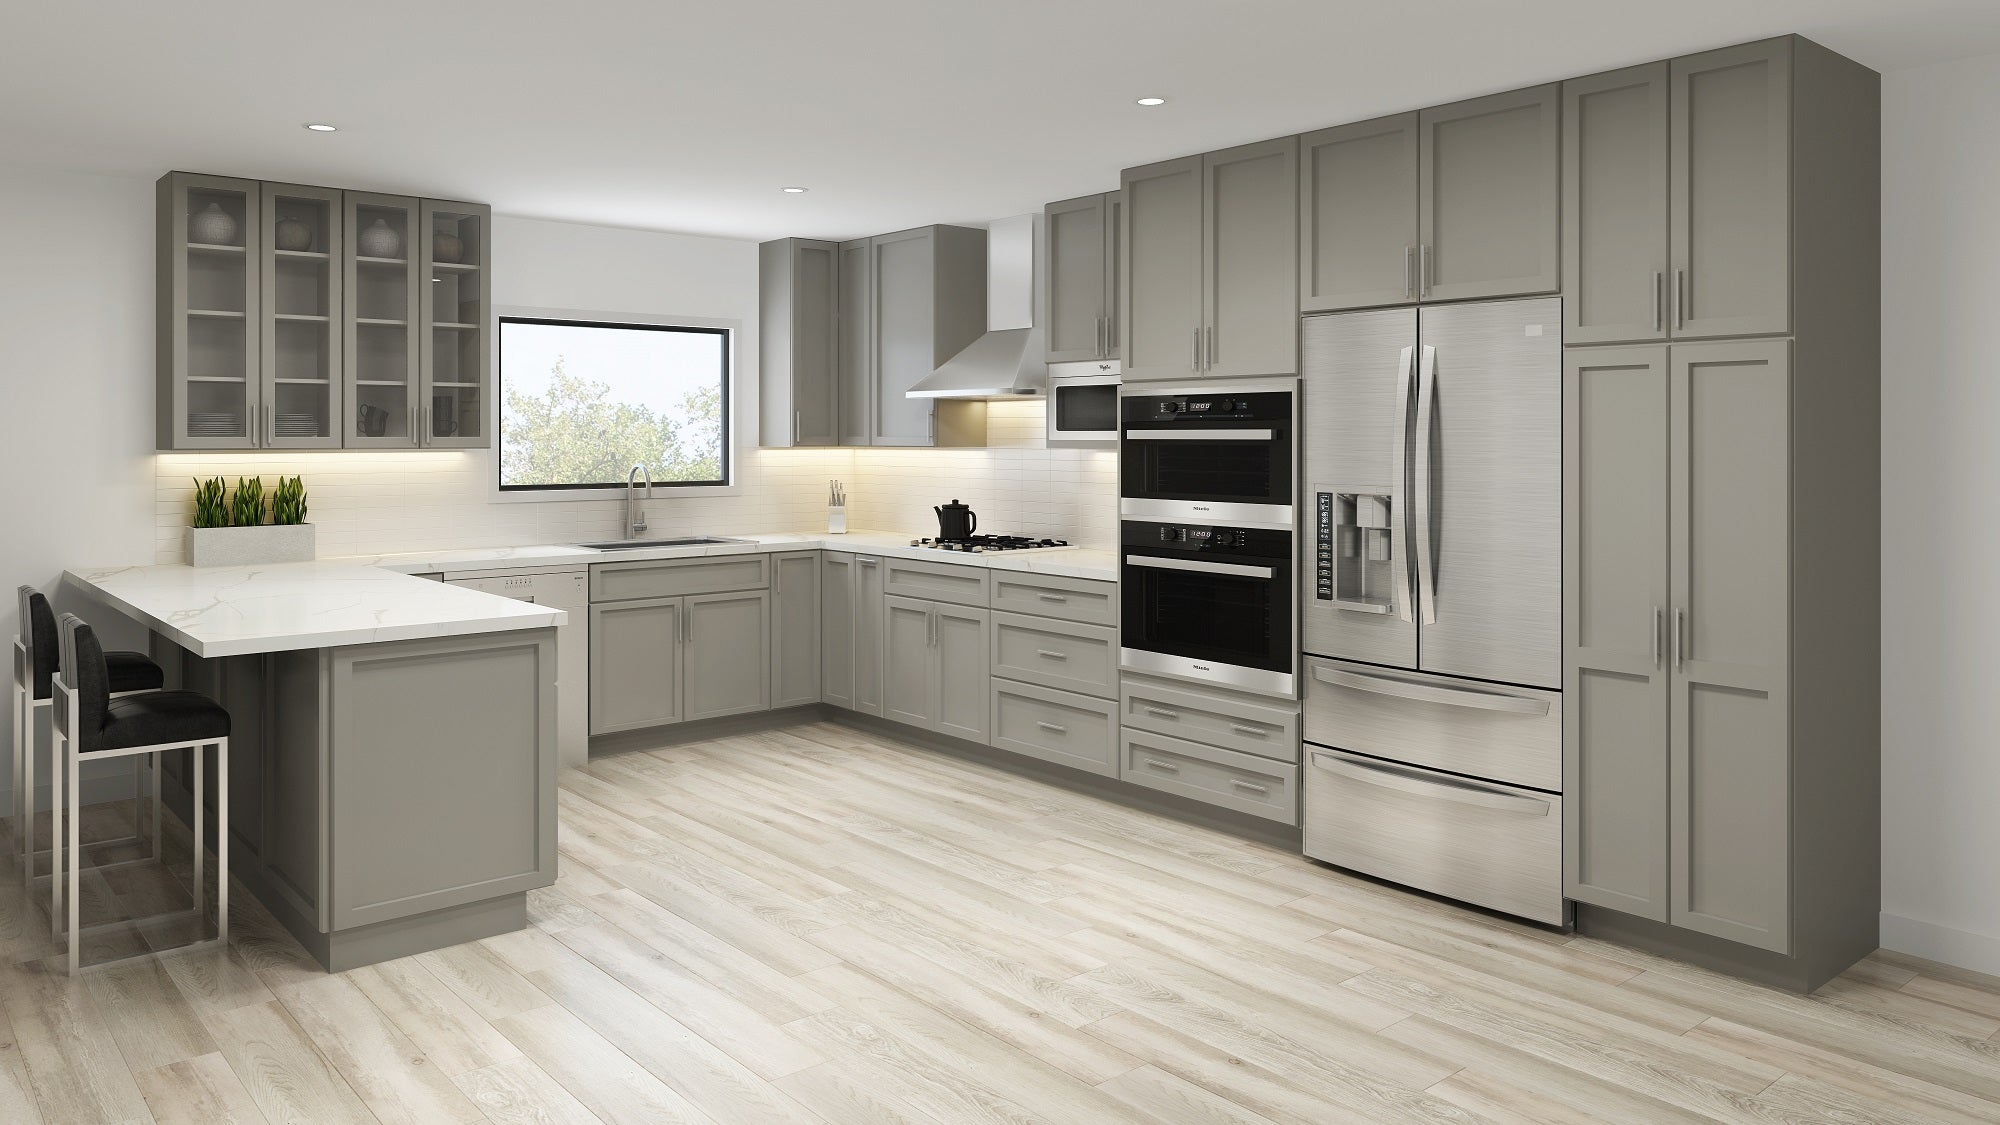 Shaker Pearl Grey Rta Kitchen Cabinets Cambridge Cabinetry